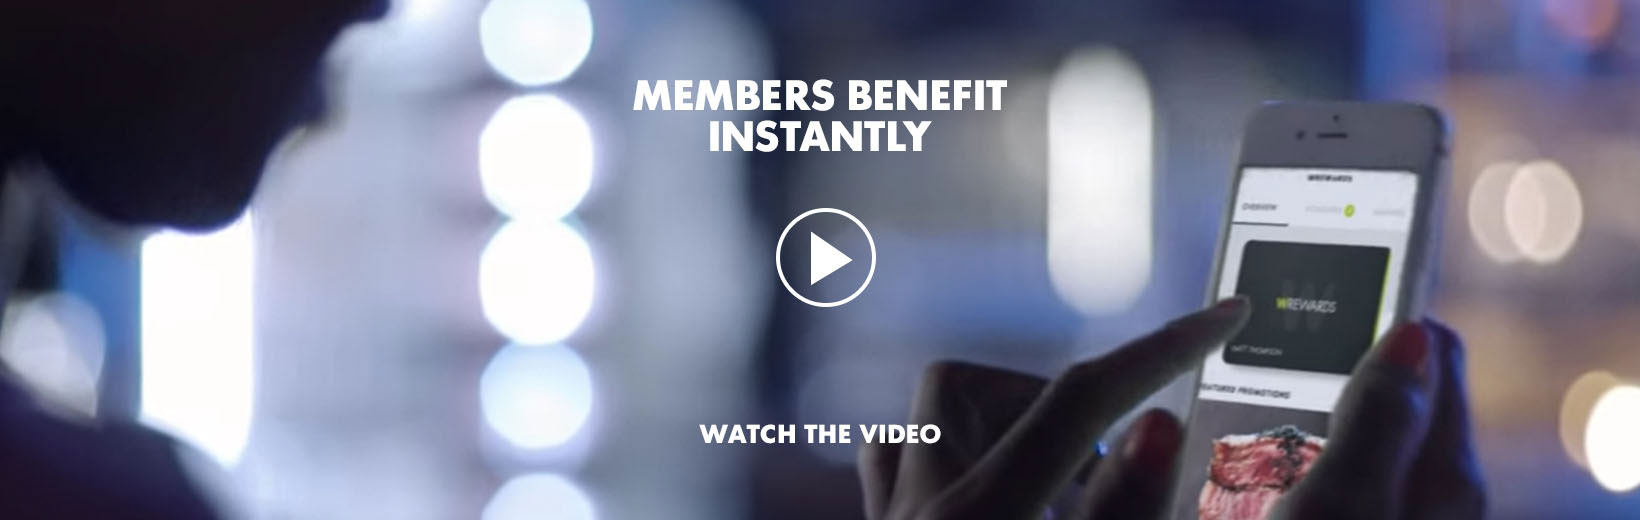 members_benefit_instantly_vid_banner